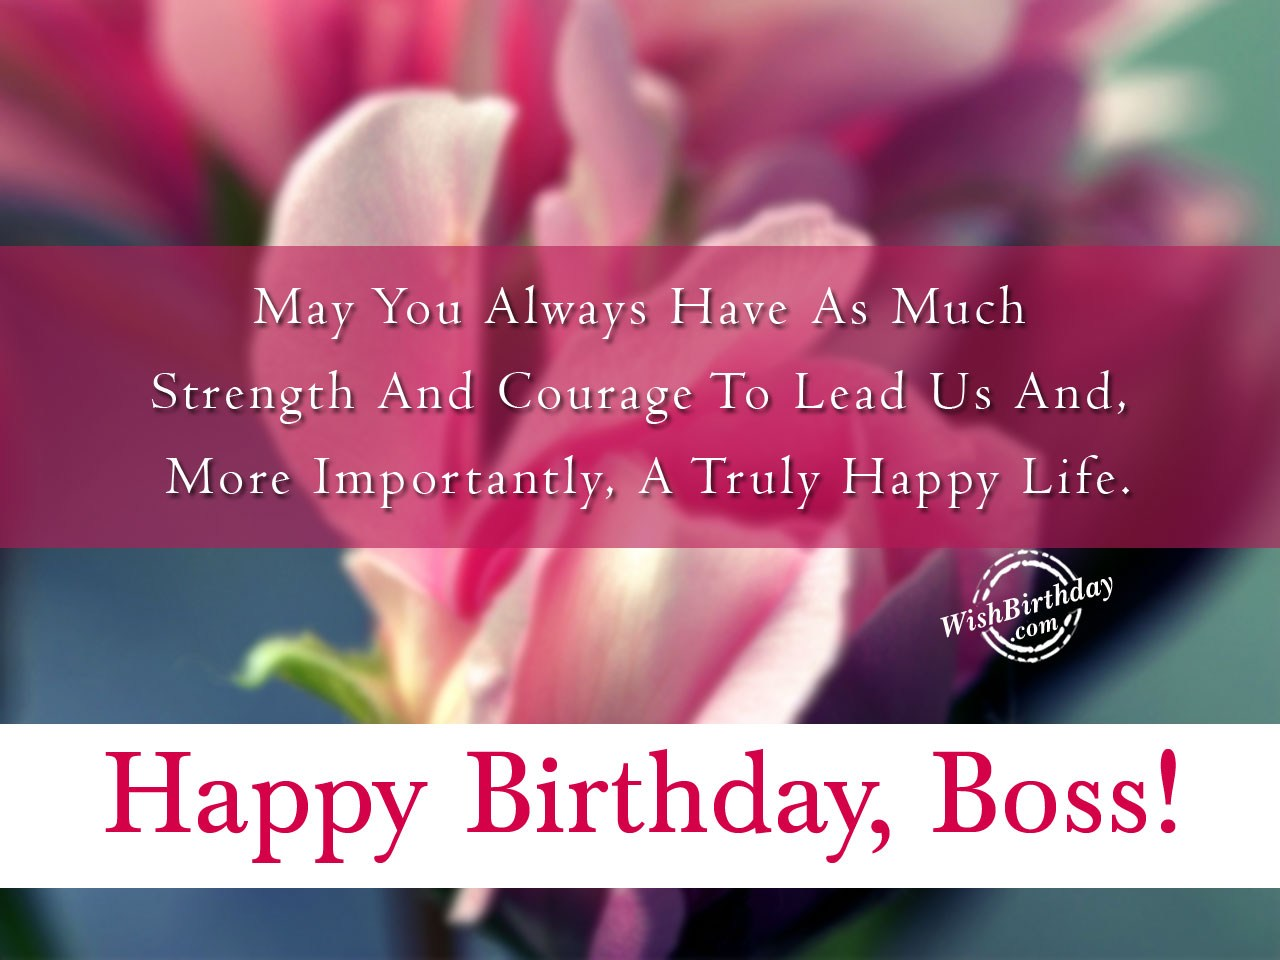 birthday greeting cards for boss happy birthday ; A-Truly-Happy-Life